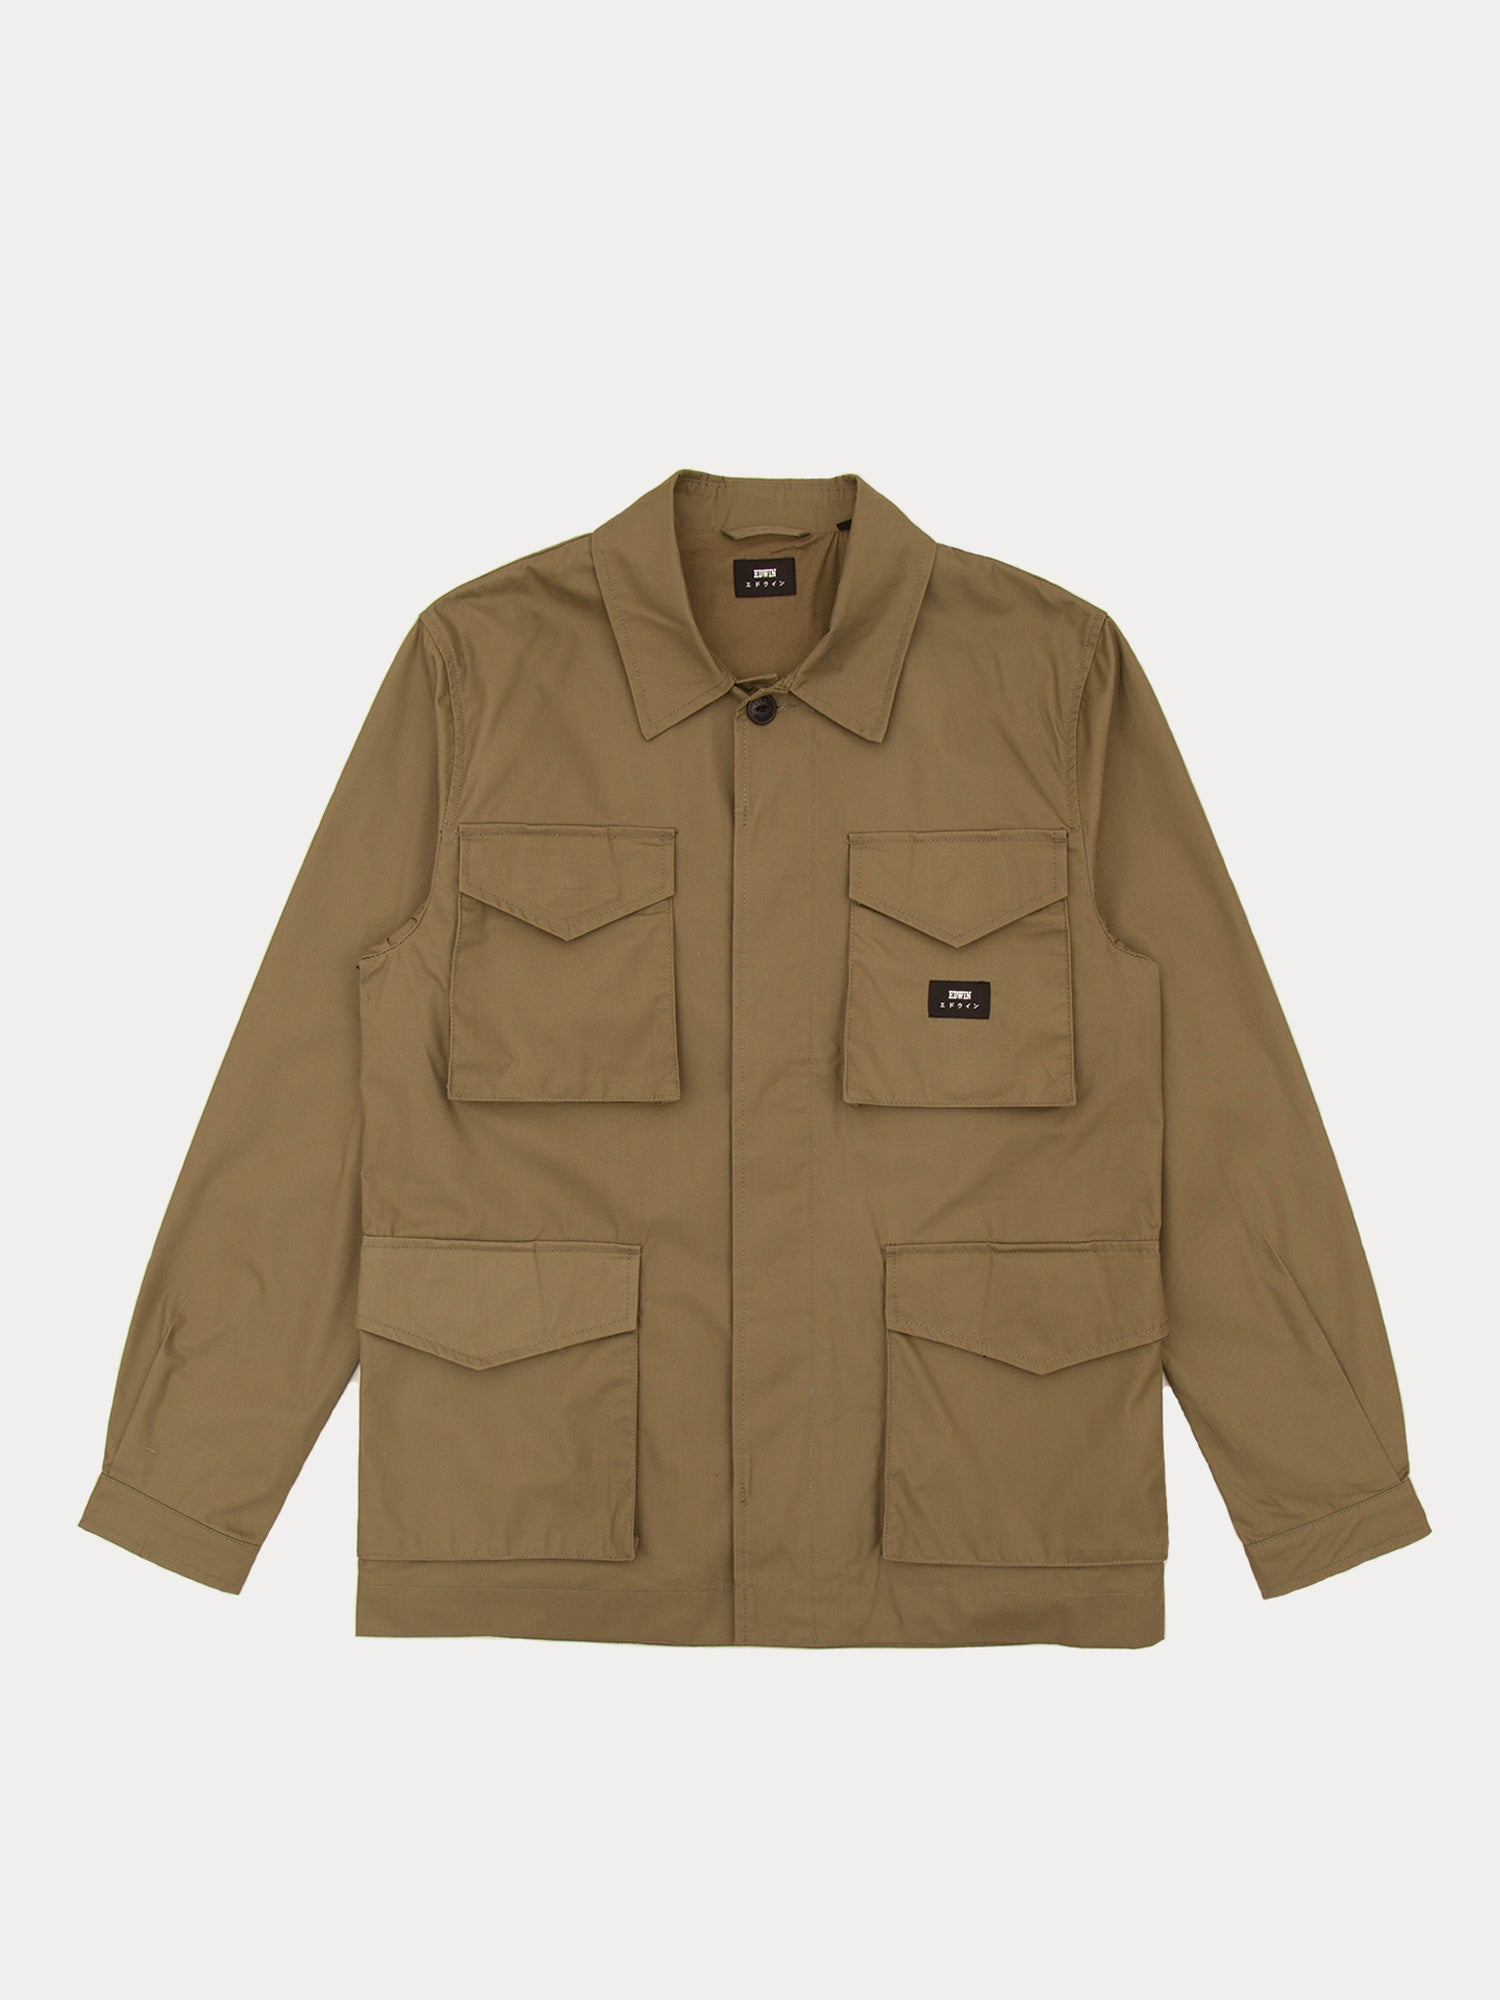 Edwin Corporal Jacket (Military Green)